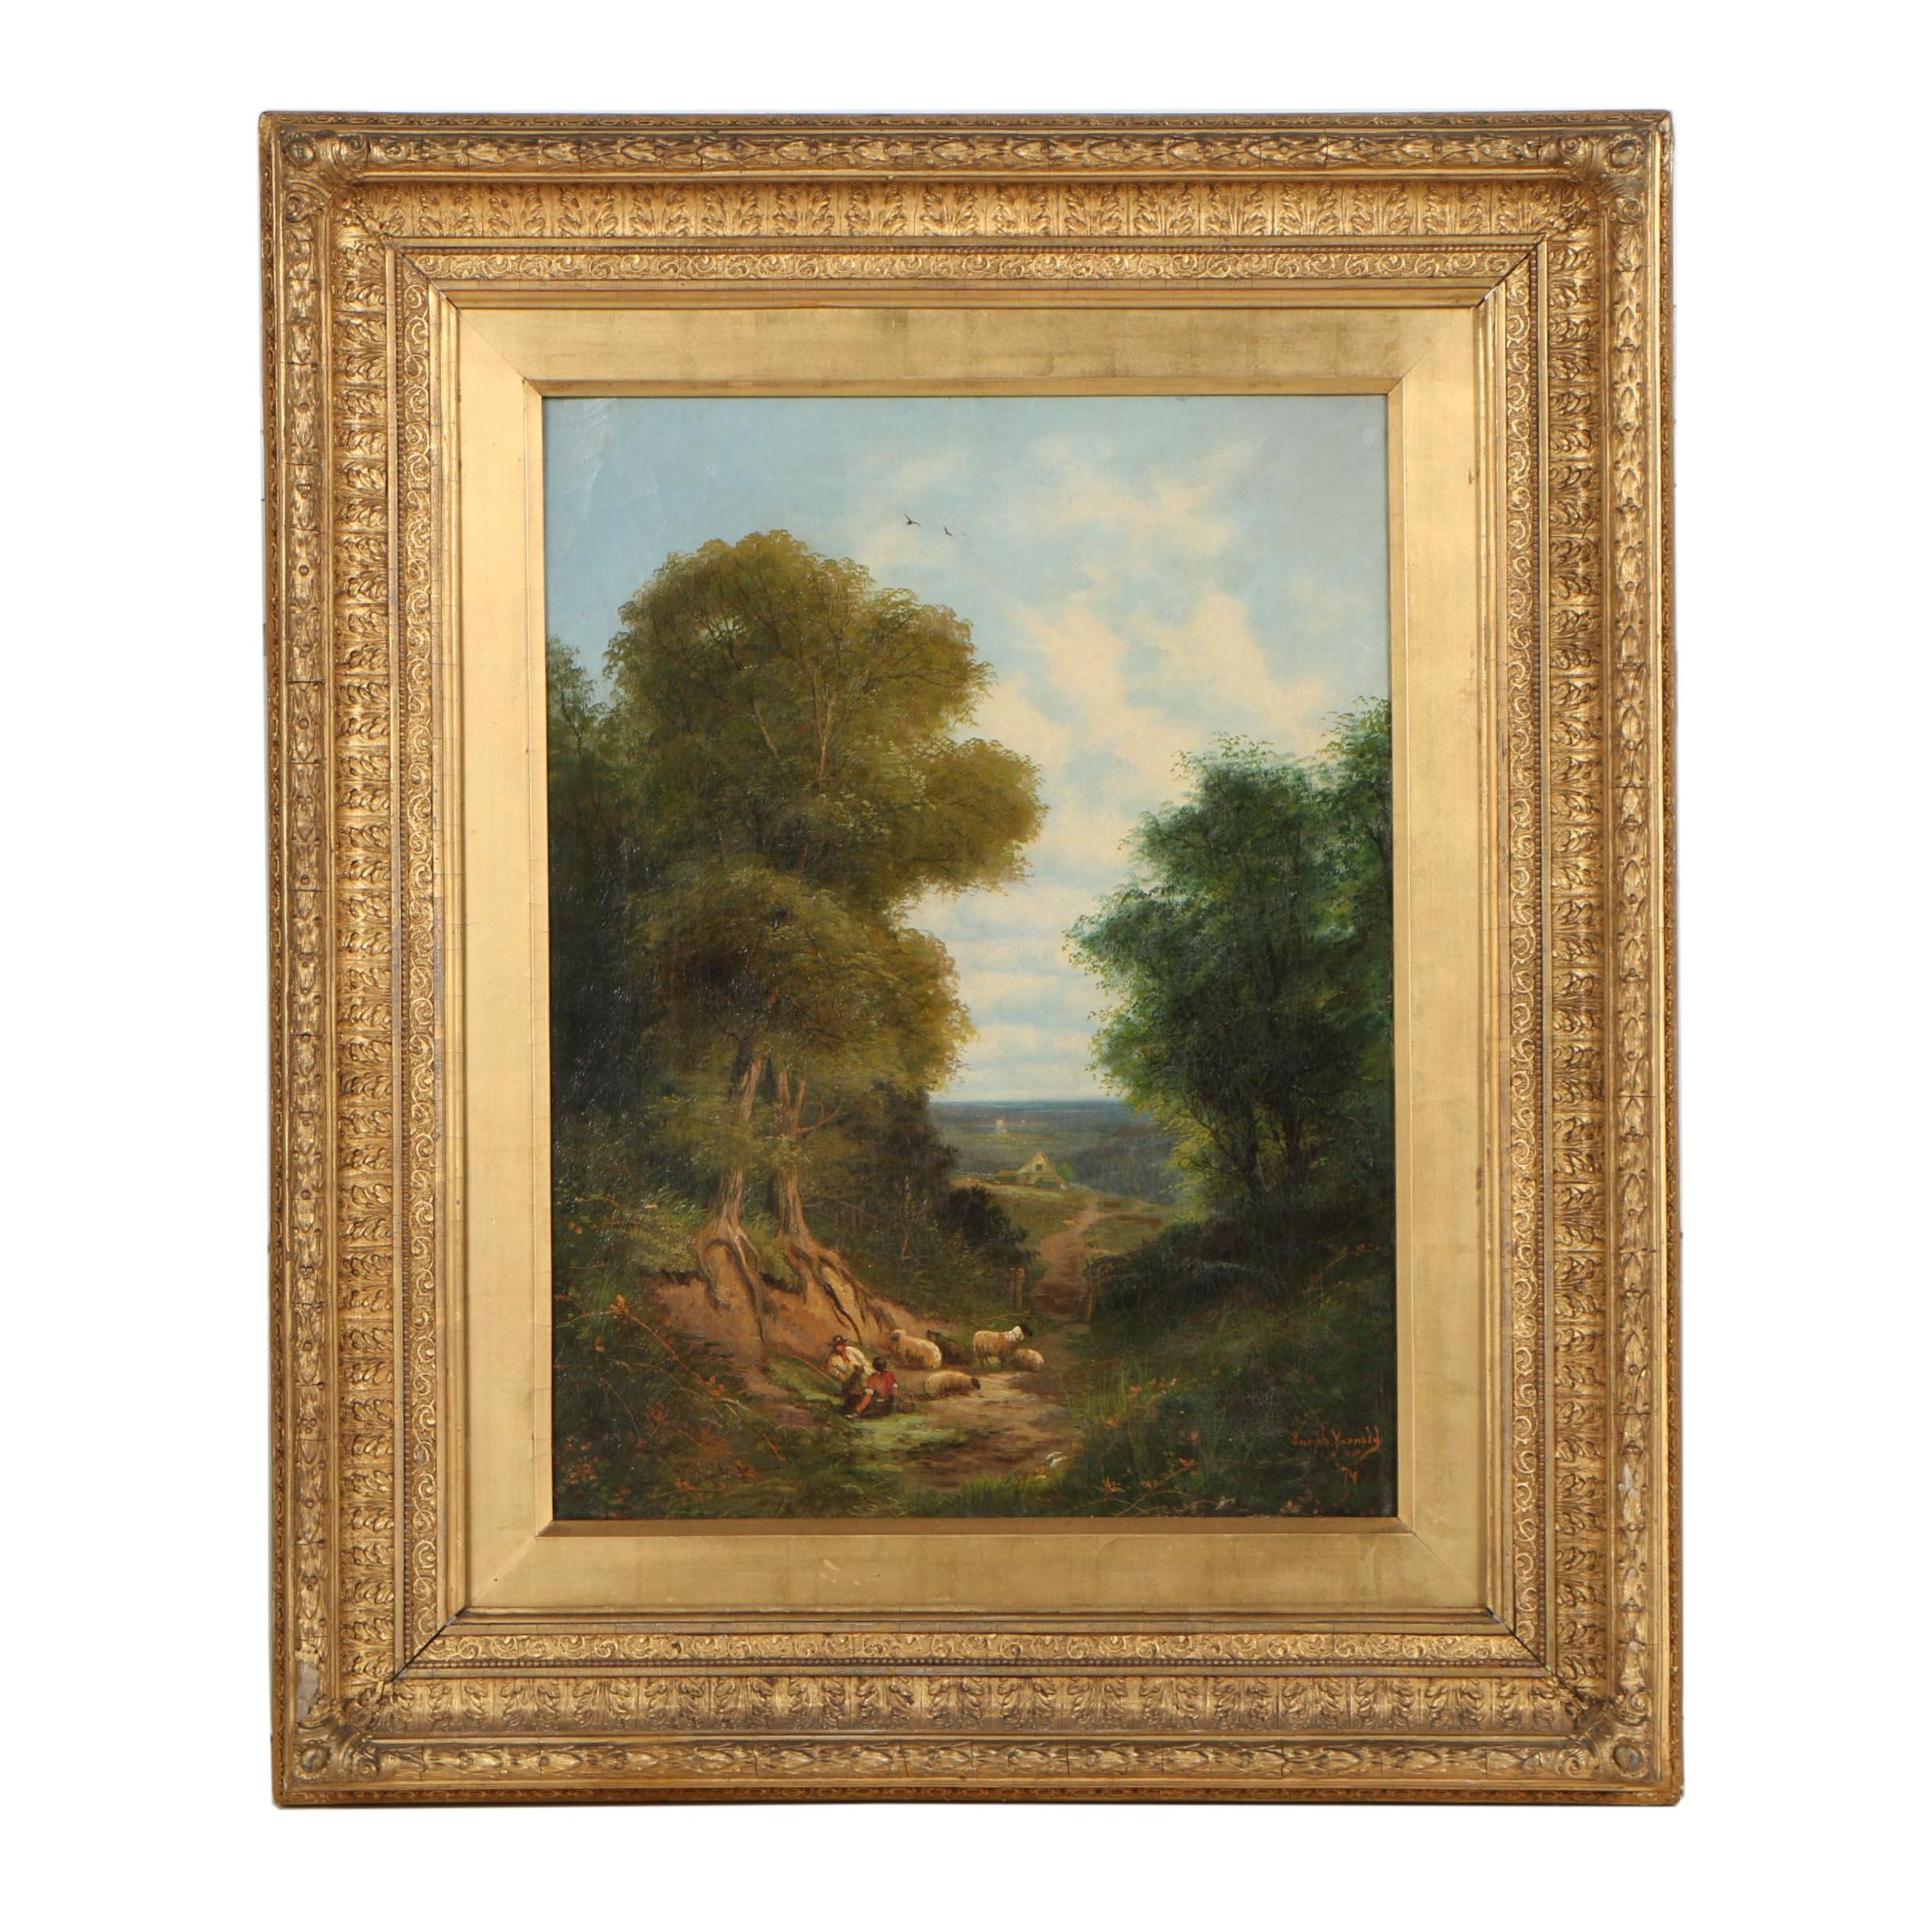 Joseph W. Yarnold 1874 Oil Painting of Pastoral Lanscape